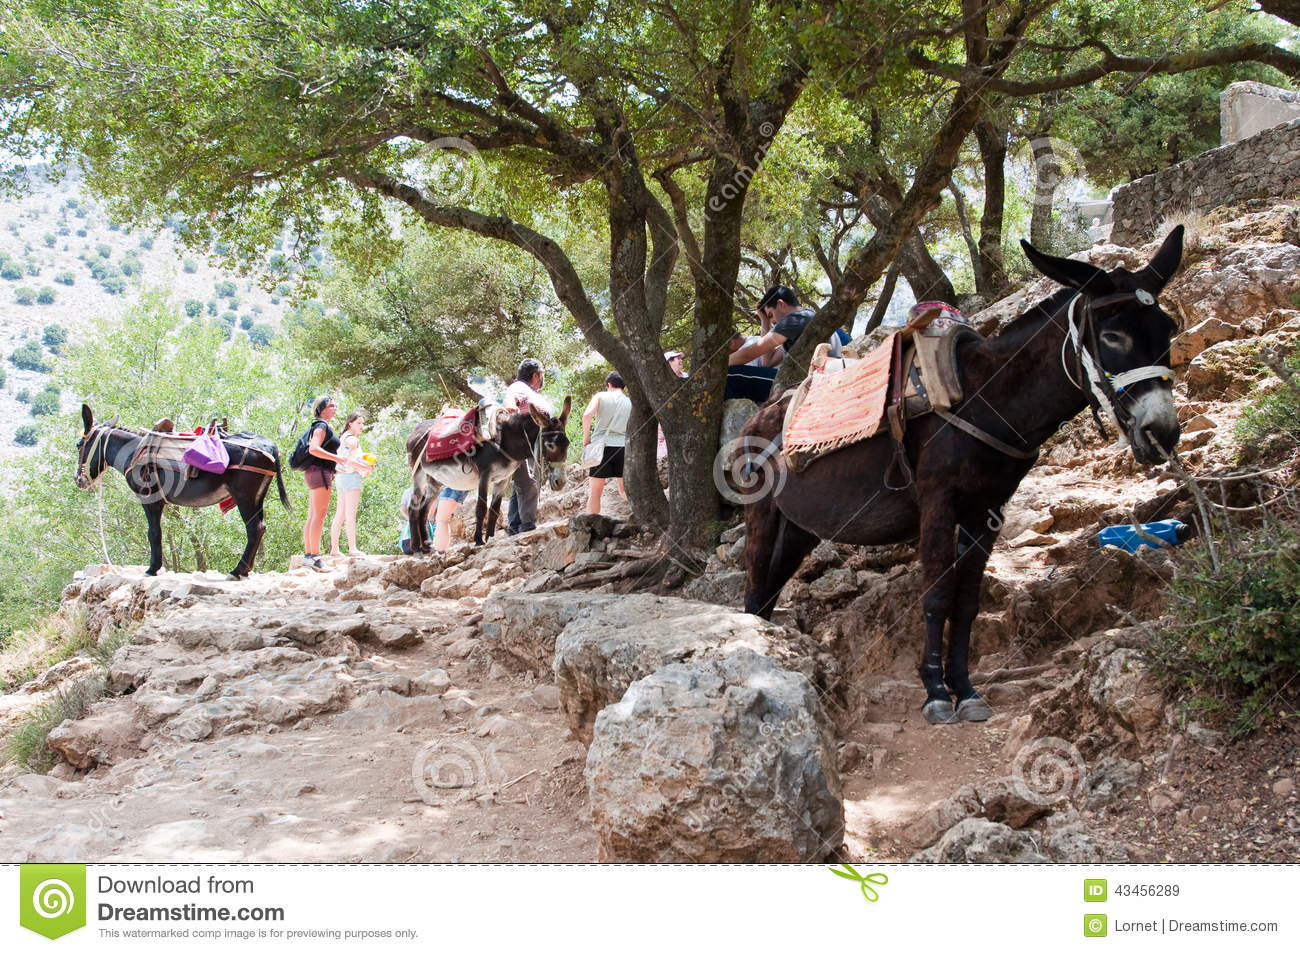 CRETE-JULY 21: The Cave of Zeus and donkey on July 21,2014 on the Crete island in Greece.